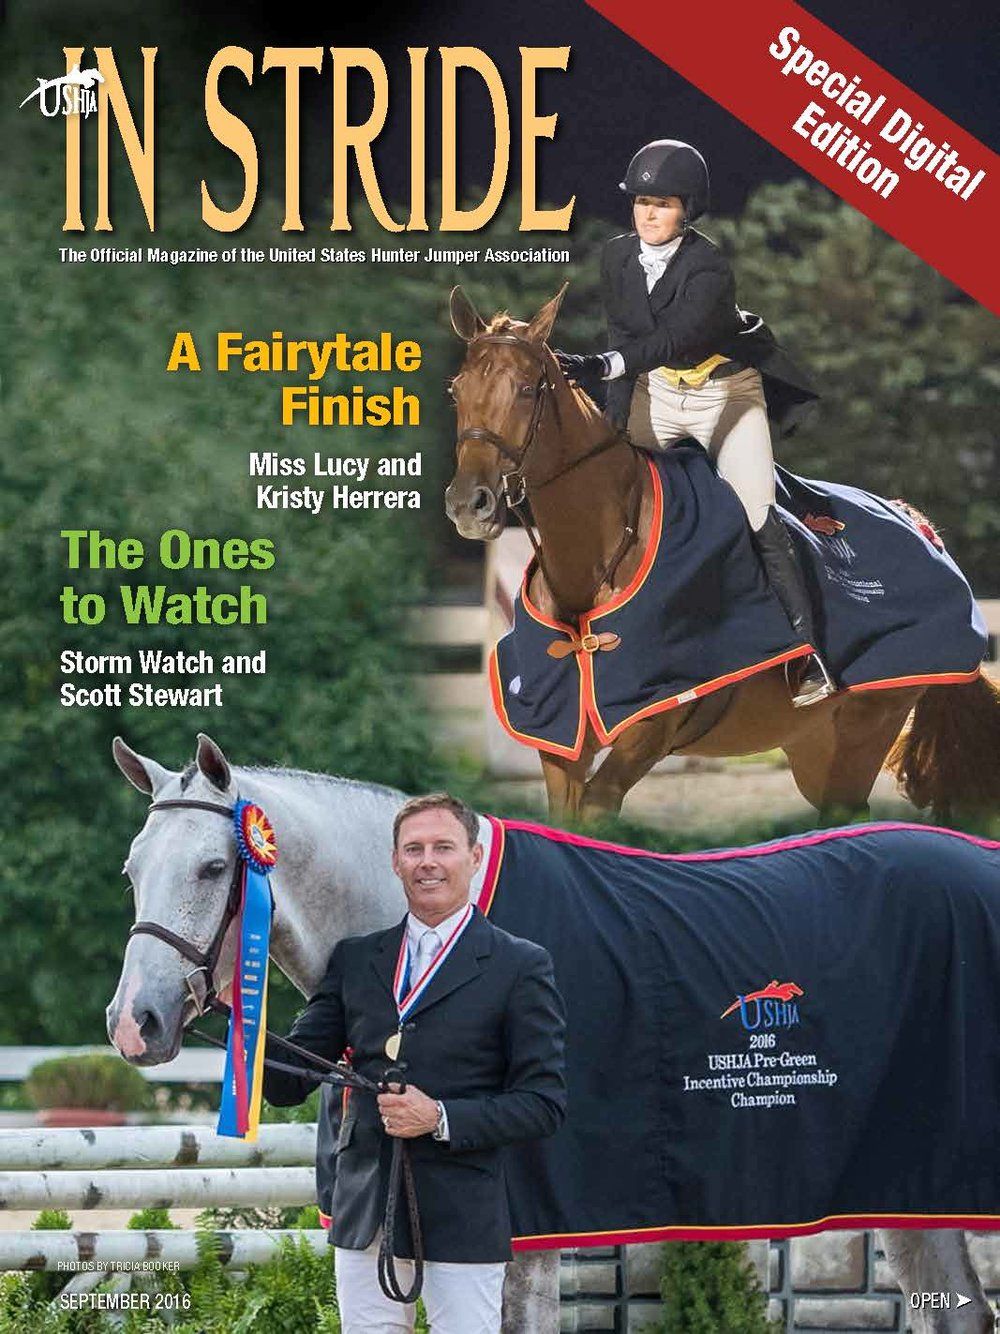 USHJA20165septALLproof05cover.jpg